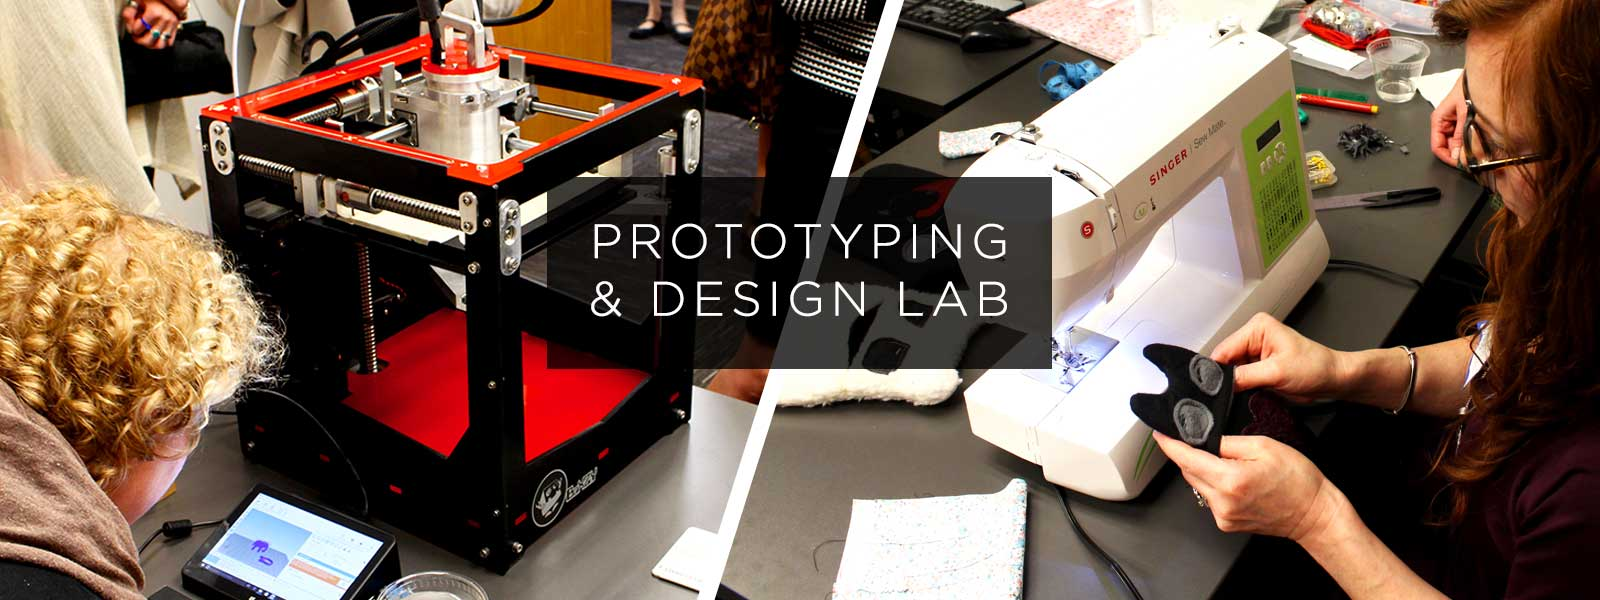 Prototyping & Design Lab